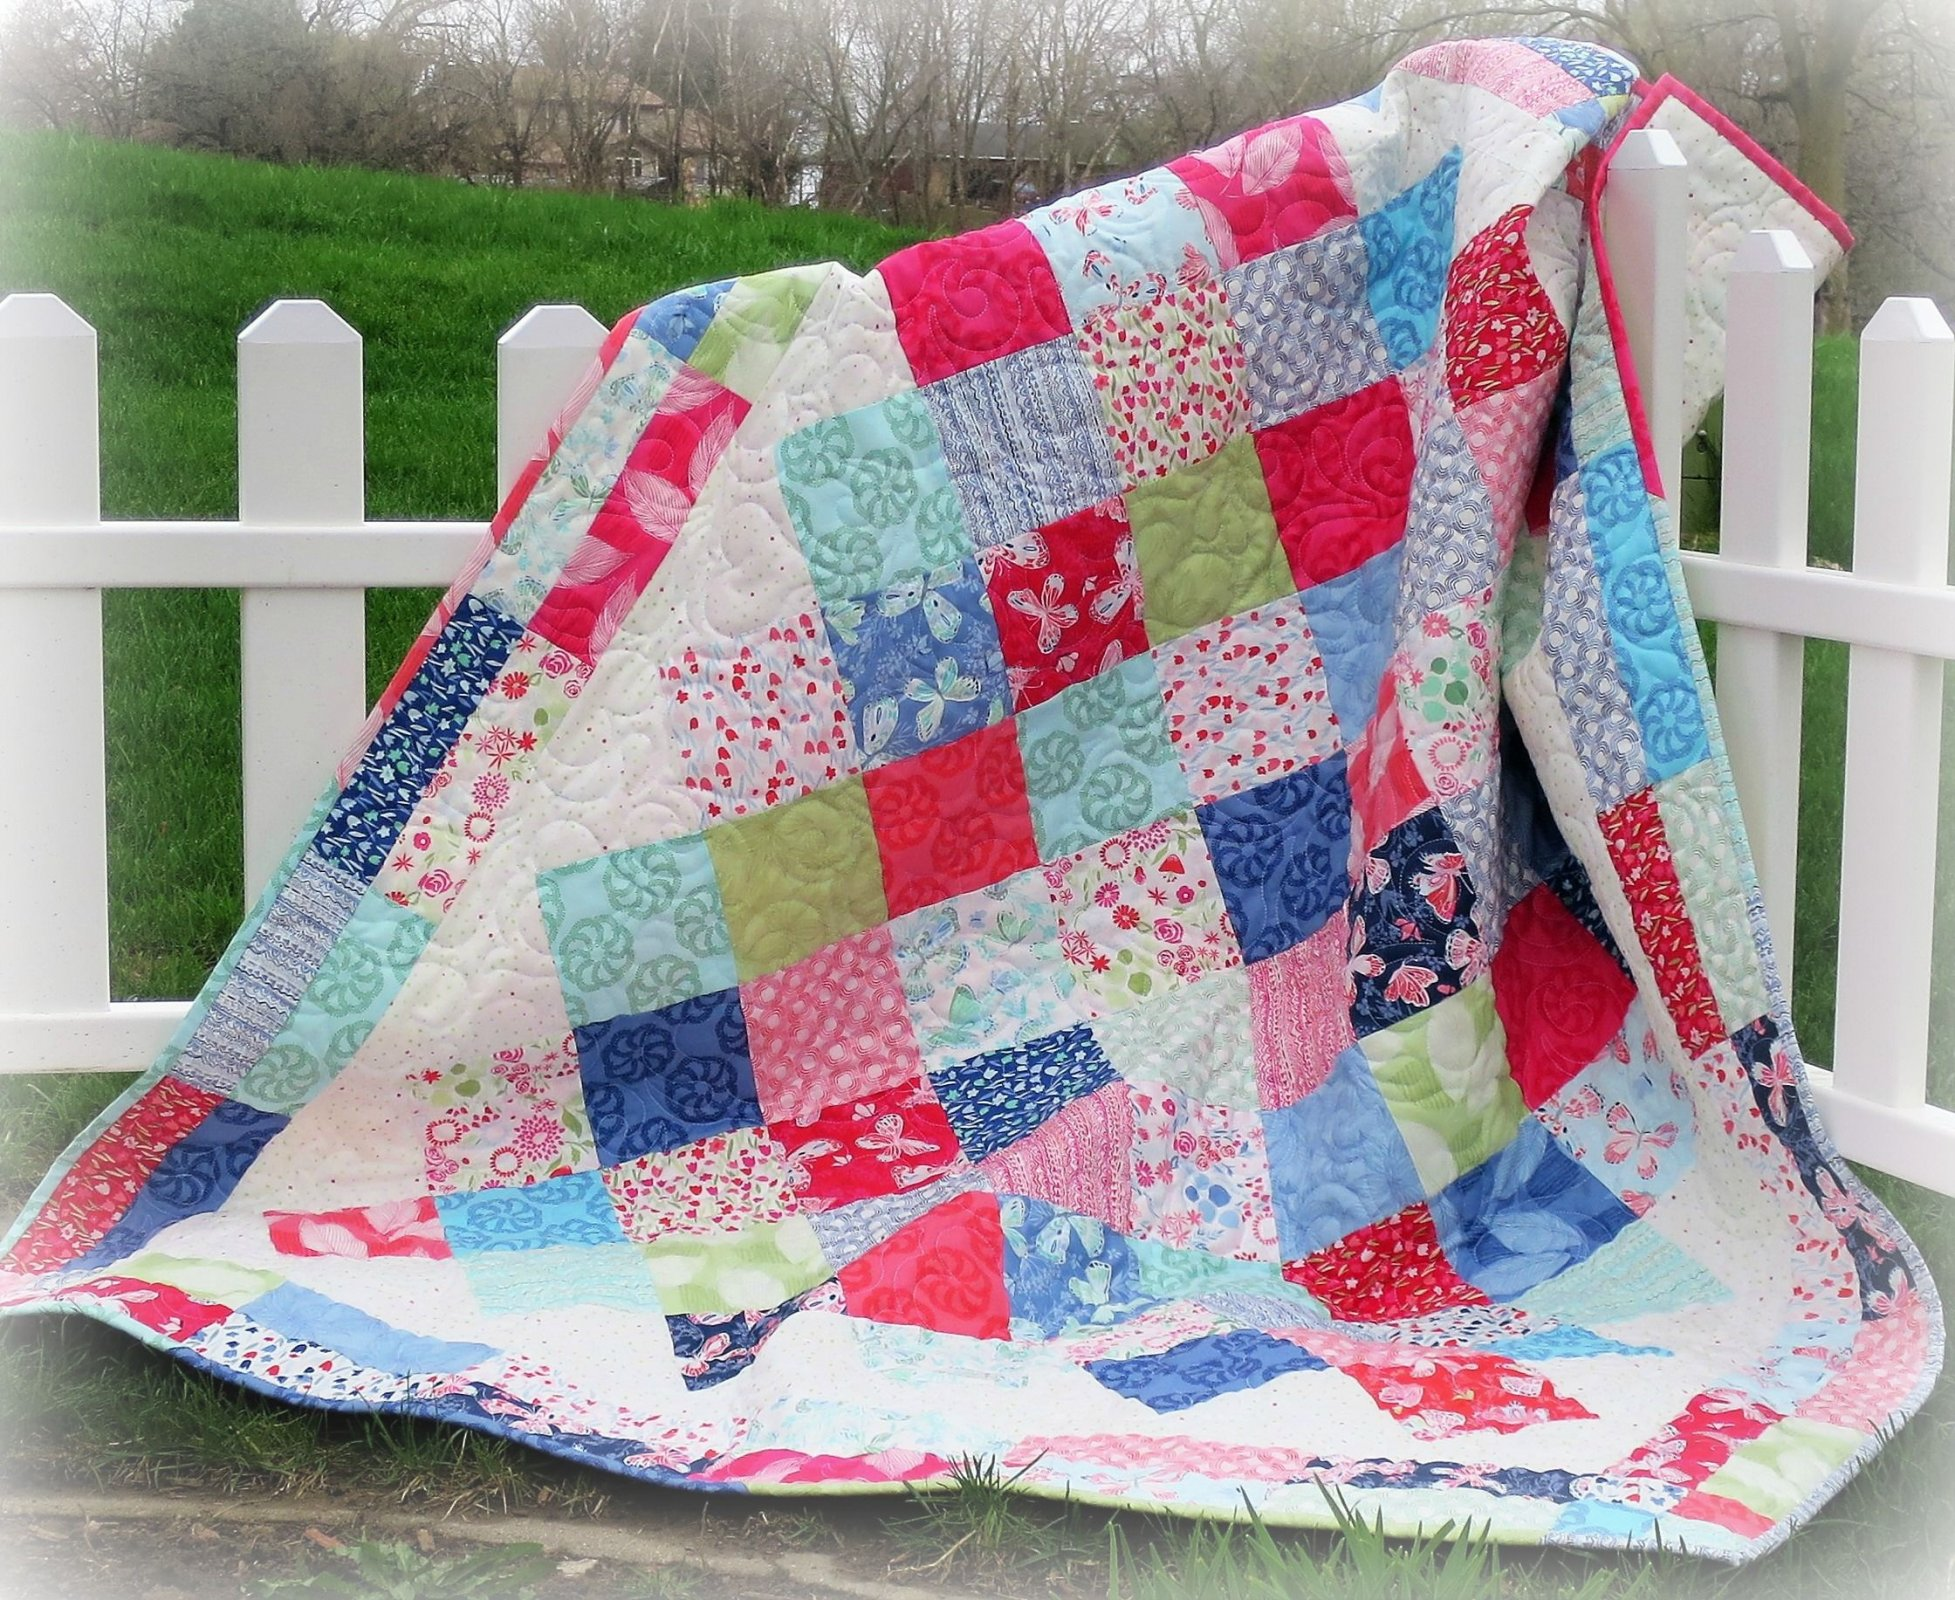 #448 Picnic Party Quilt Pattern - Paper Pattern